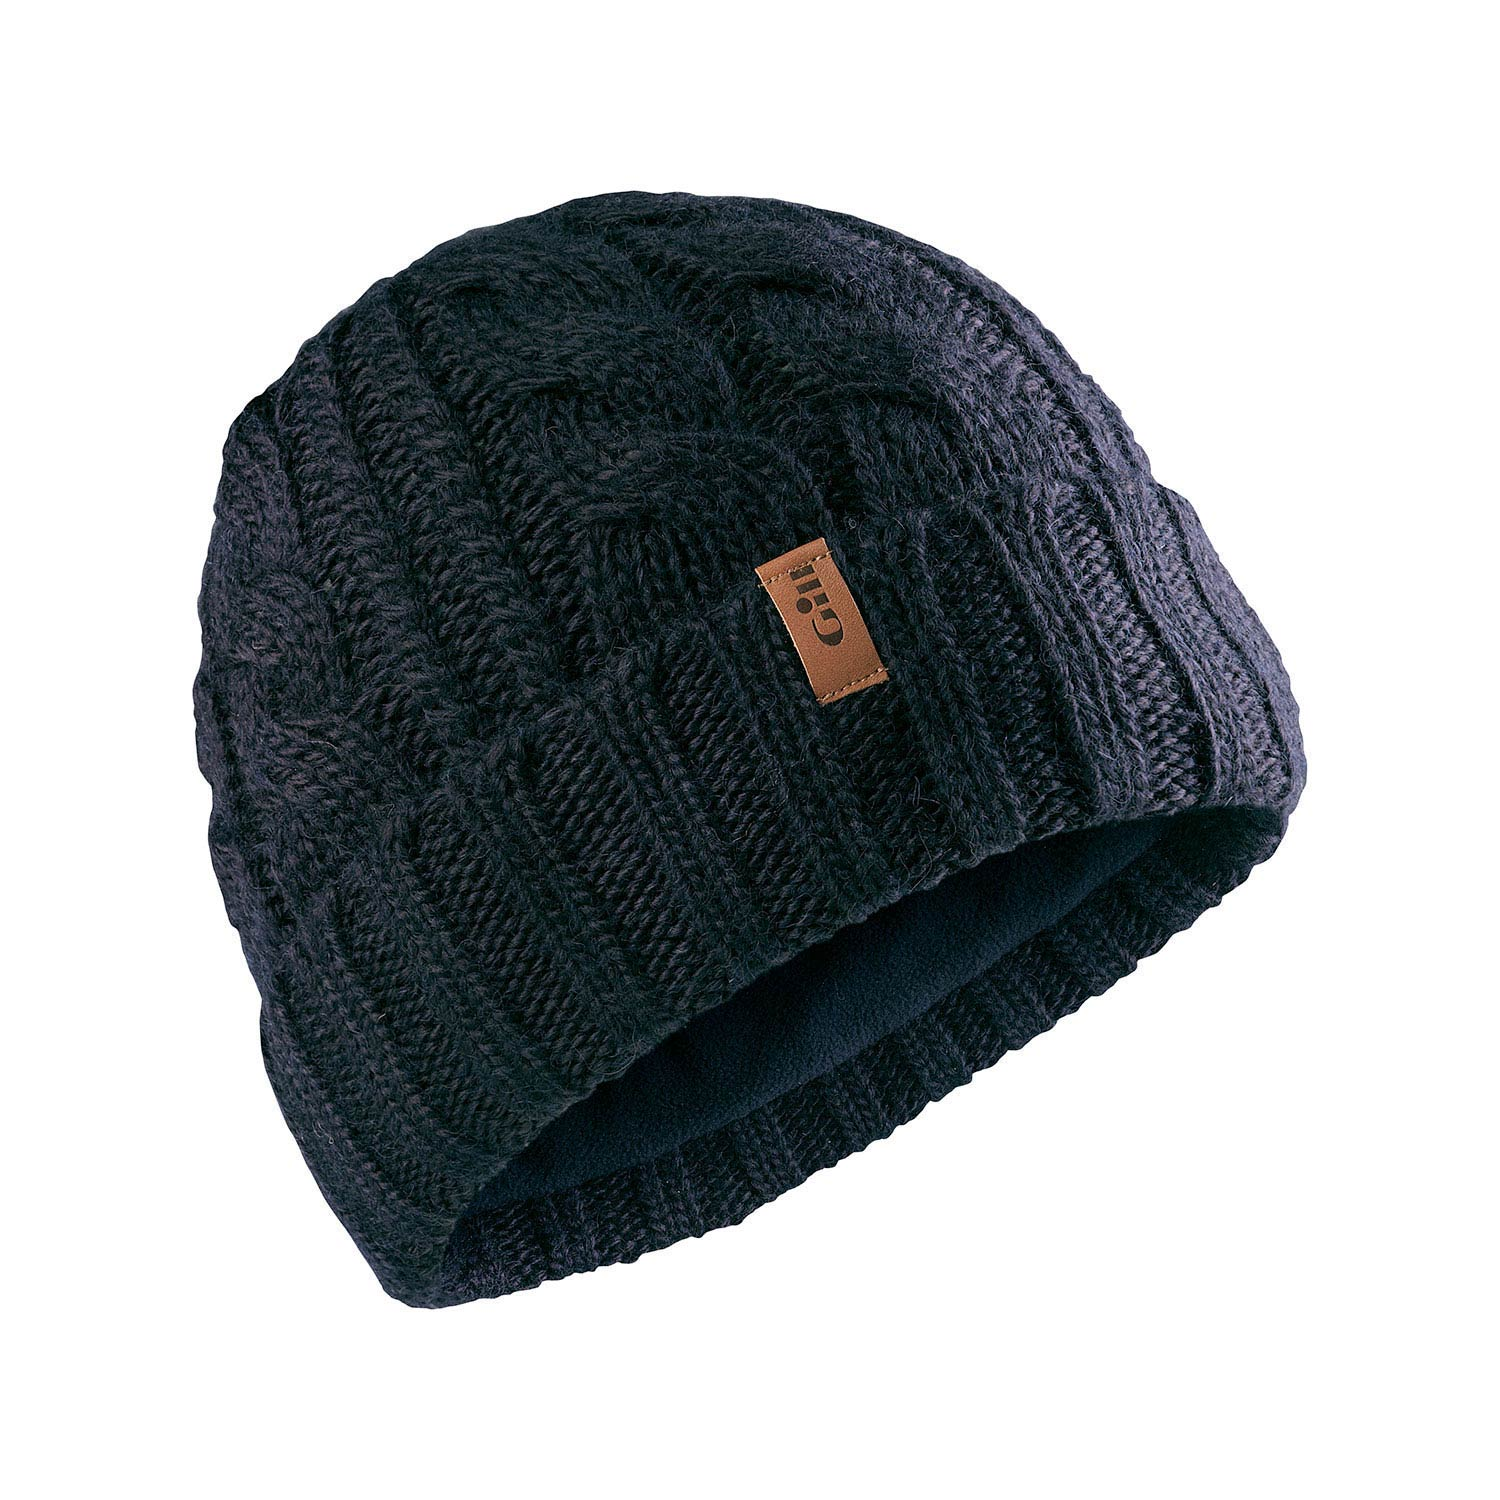 Knitting Pattern For Cable Beanie : Gill Cable Knit Beanie - Navy - Sailing Caps Hats and ...